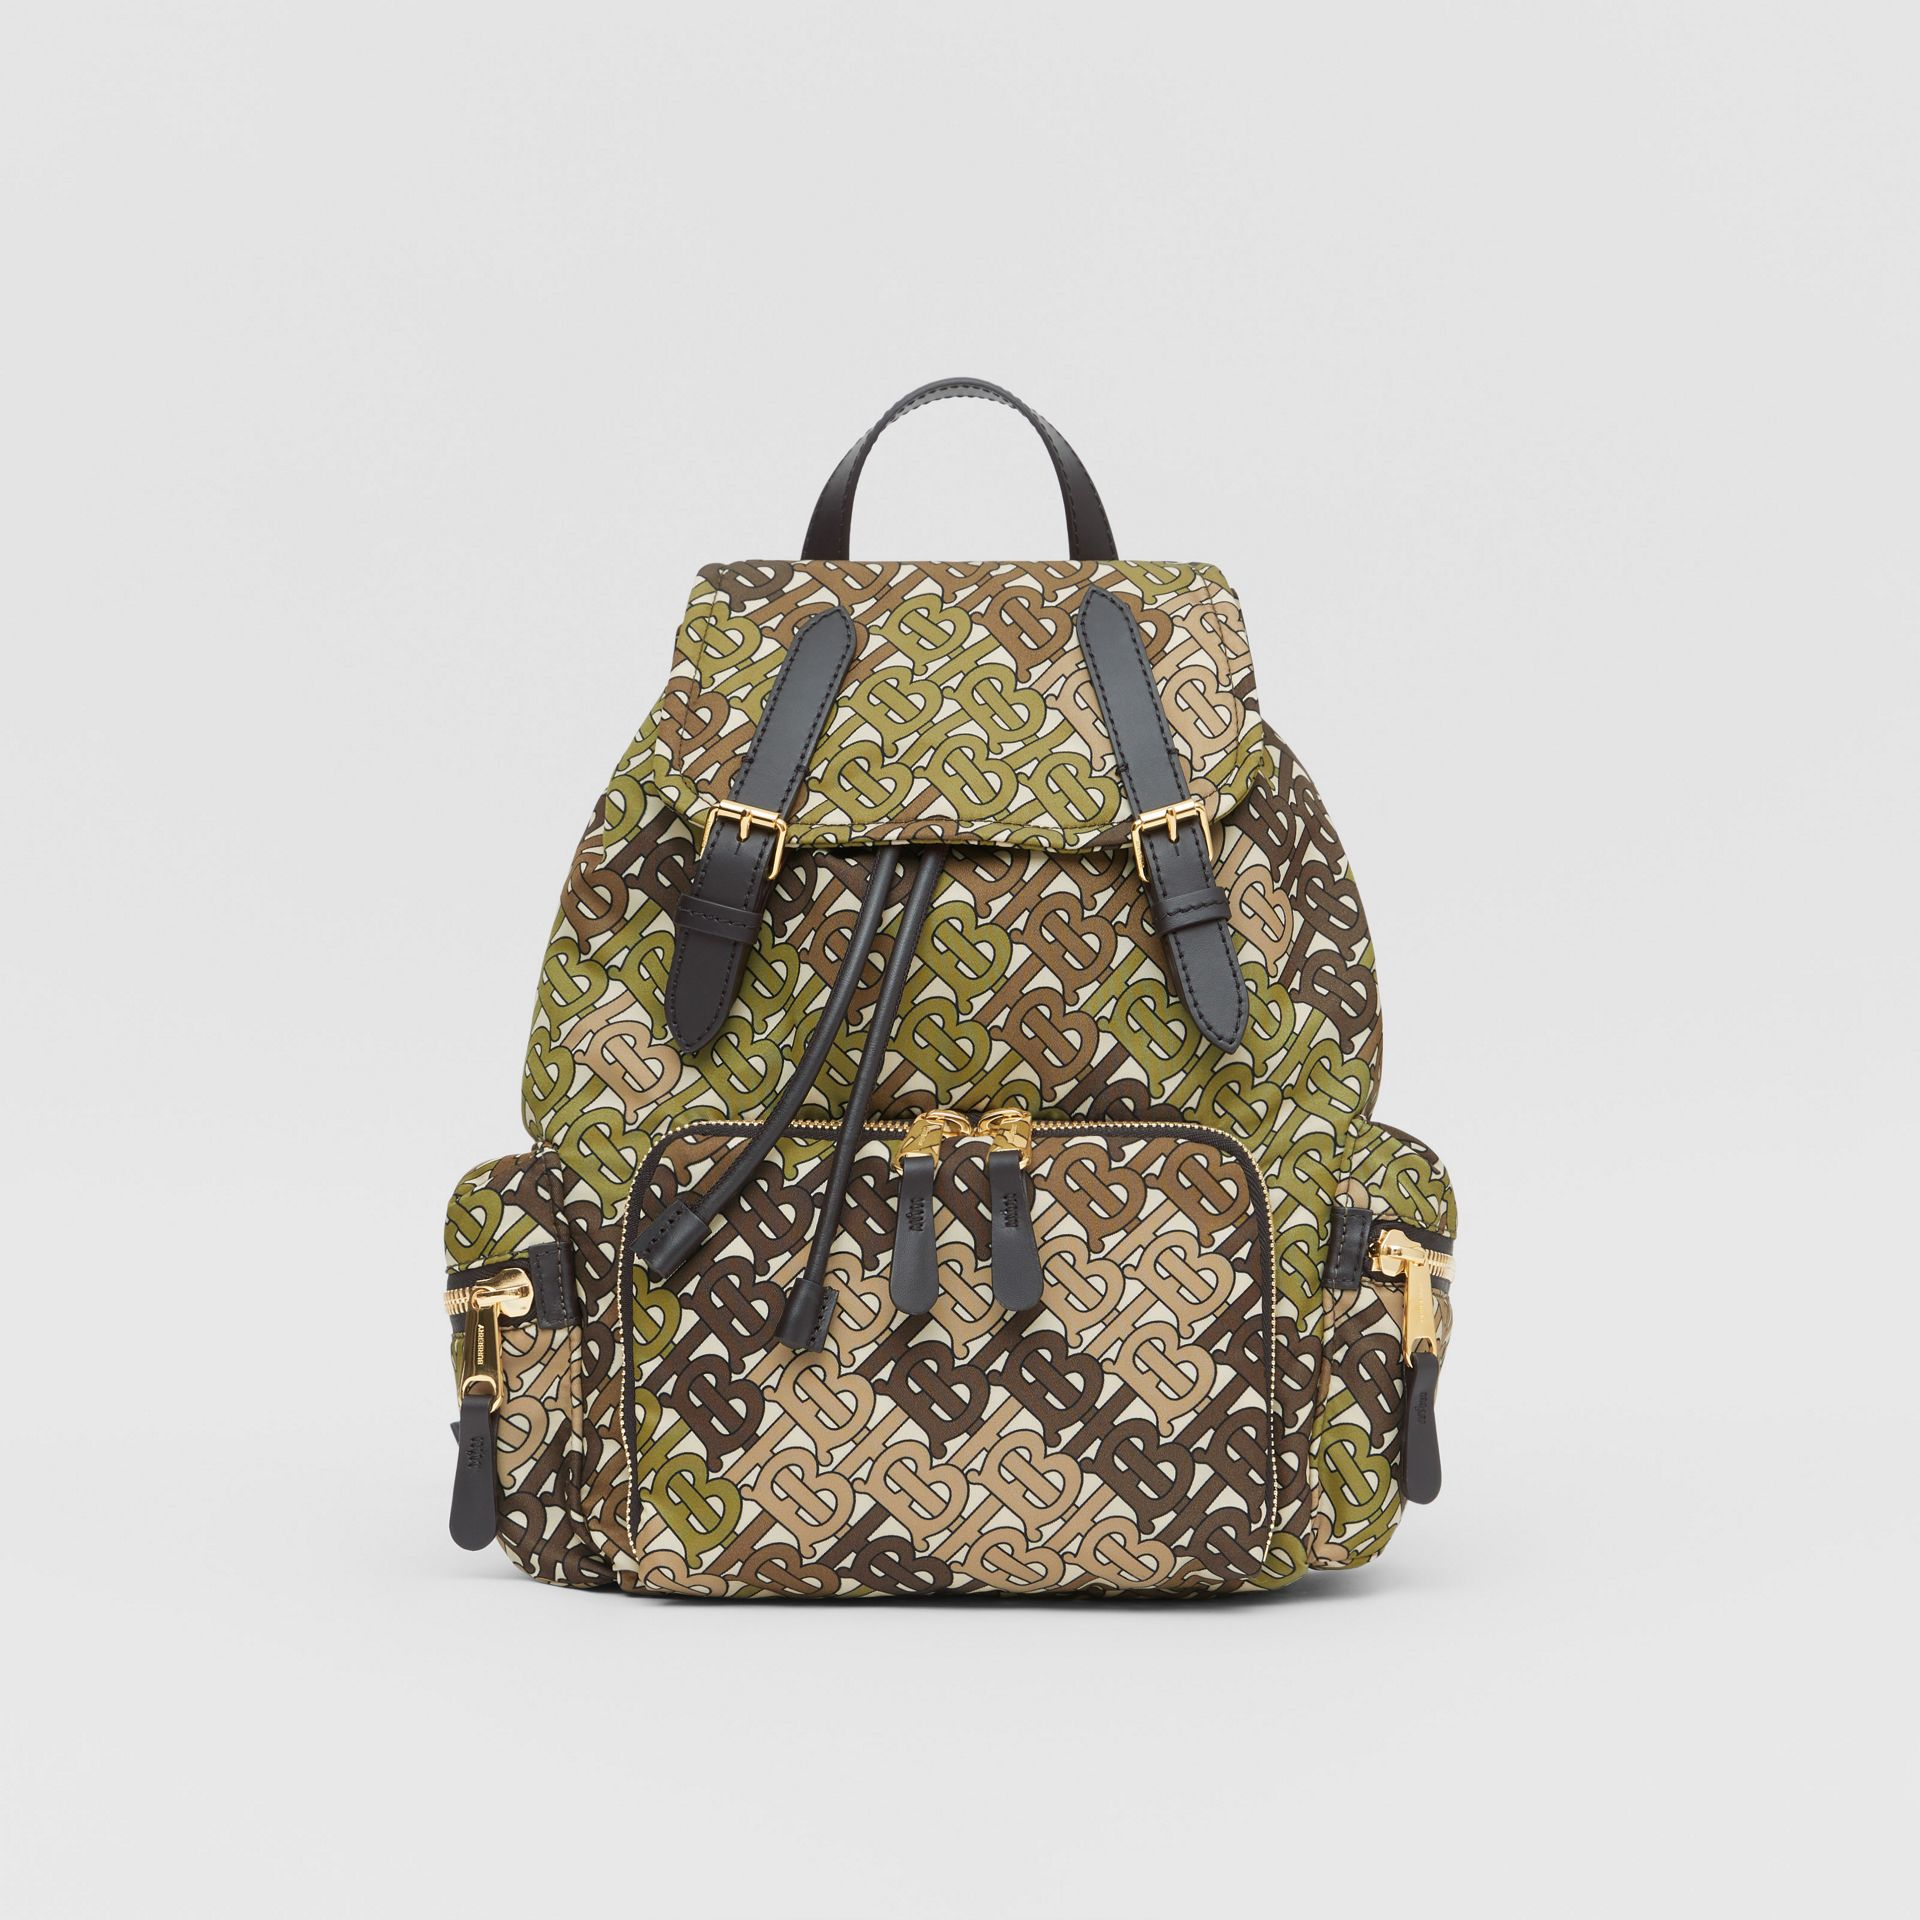 Sac The Rucksack moyen en nylon Monogram (Vert Kaki) - Femme | Burberry - photo de la galerie 0